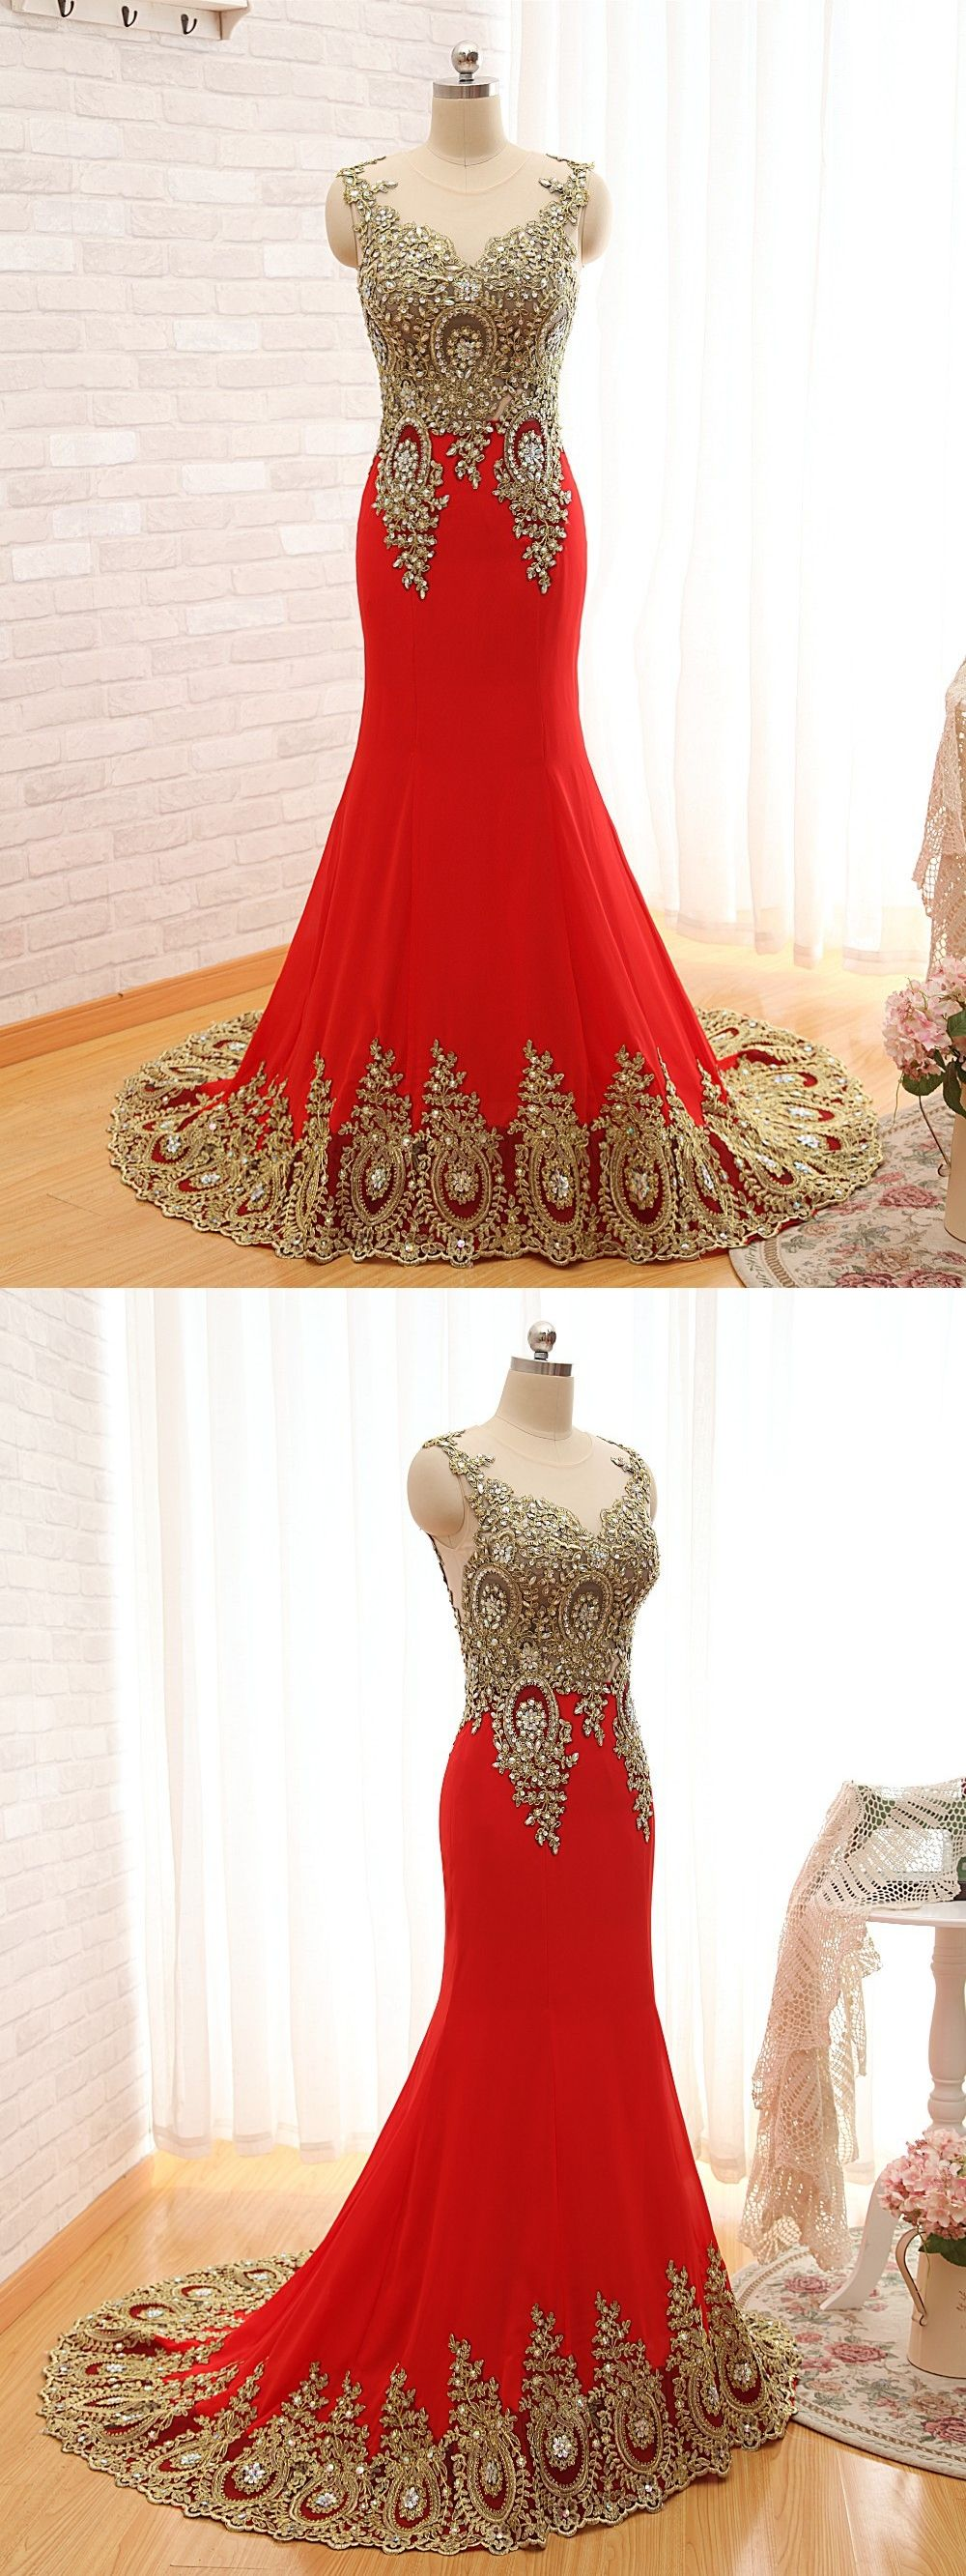 Elegant 2017 New Design Gold Embroidery Mermaid Evening Dresses Black red  Lace Evening Gowns Patterns Formal 21021fda6582